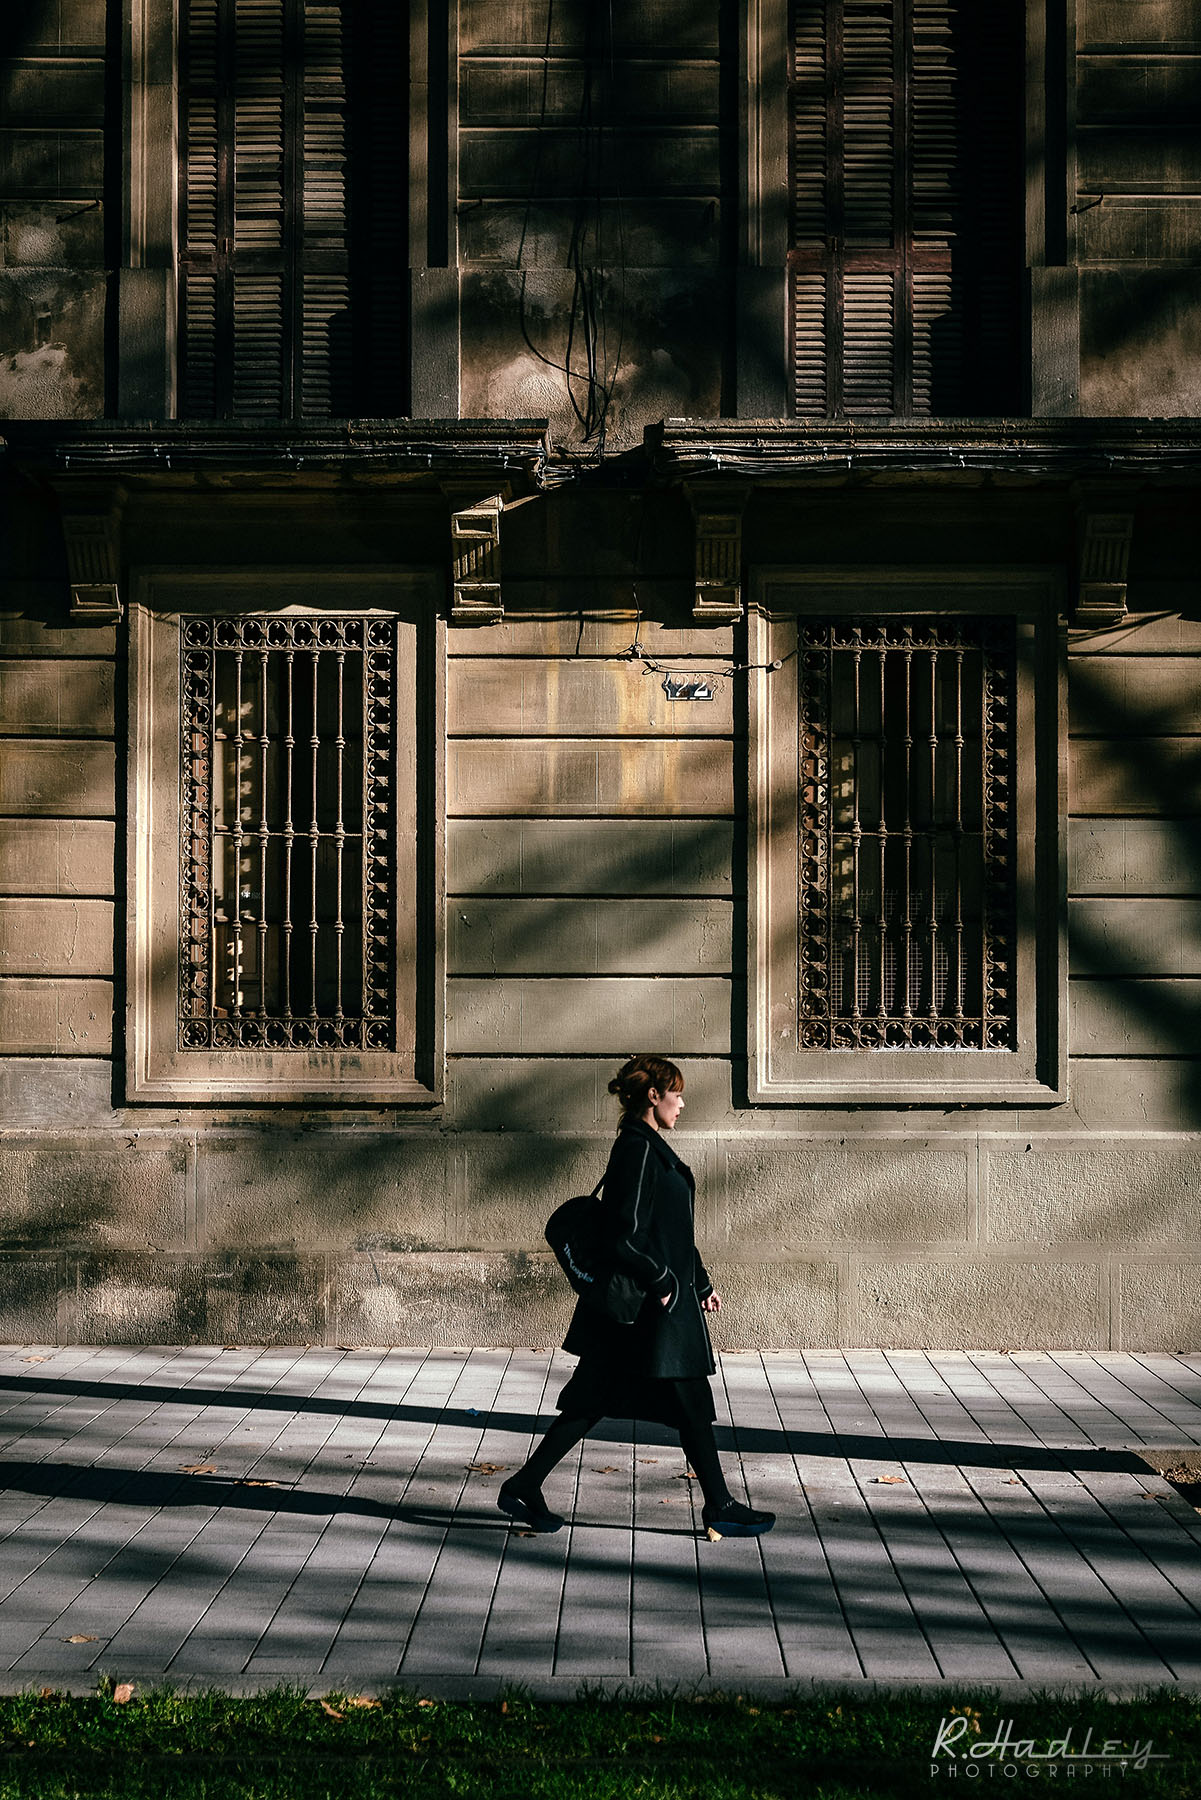 walker on Wellington avenue, Barcelona during a winter/December afternoon light.